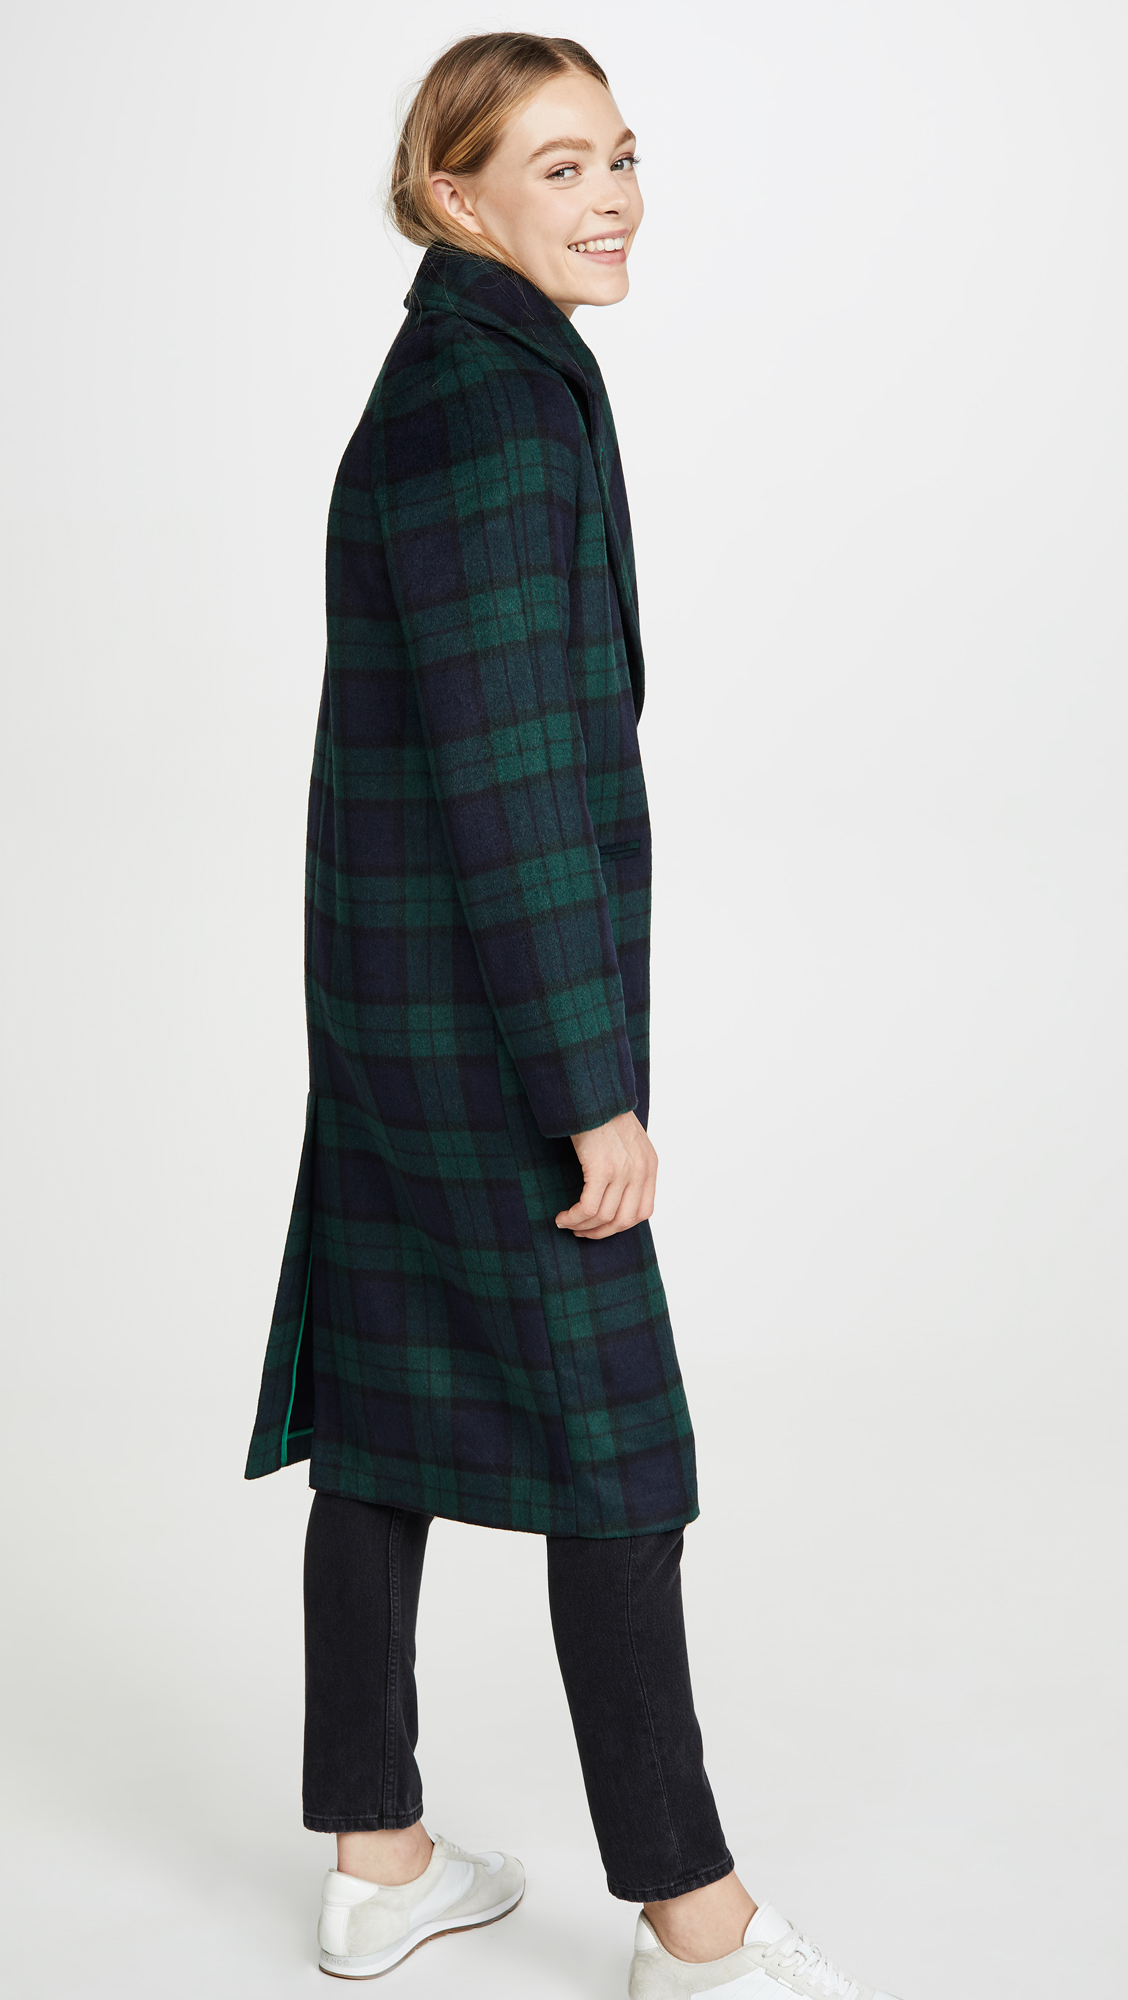 Green and Navy Plaid Jacket